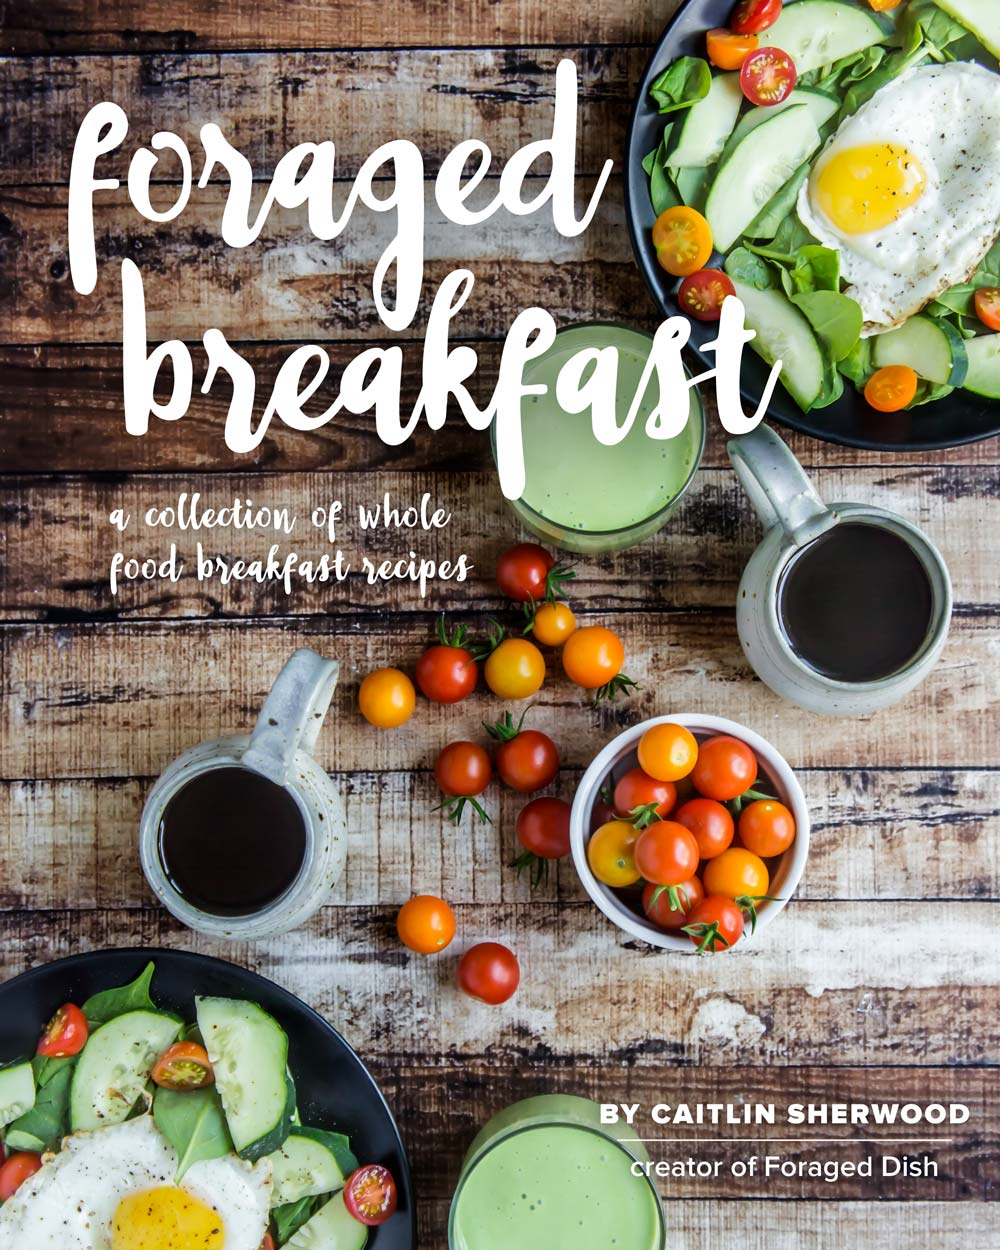 Foraged Breakfast - a collection of whole food breakfast recipes